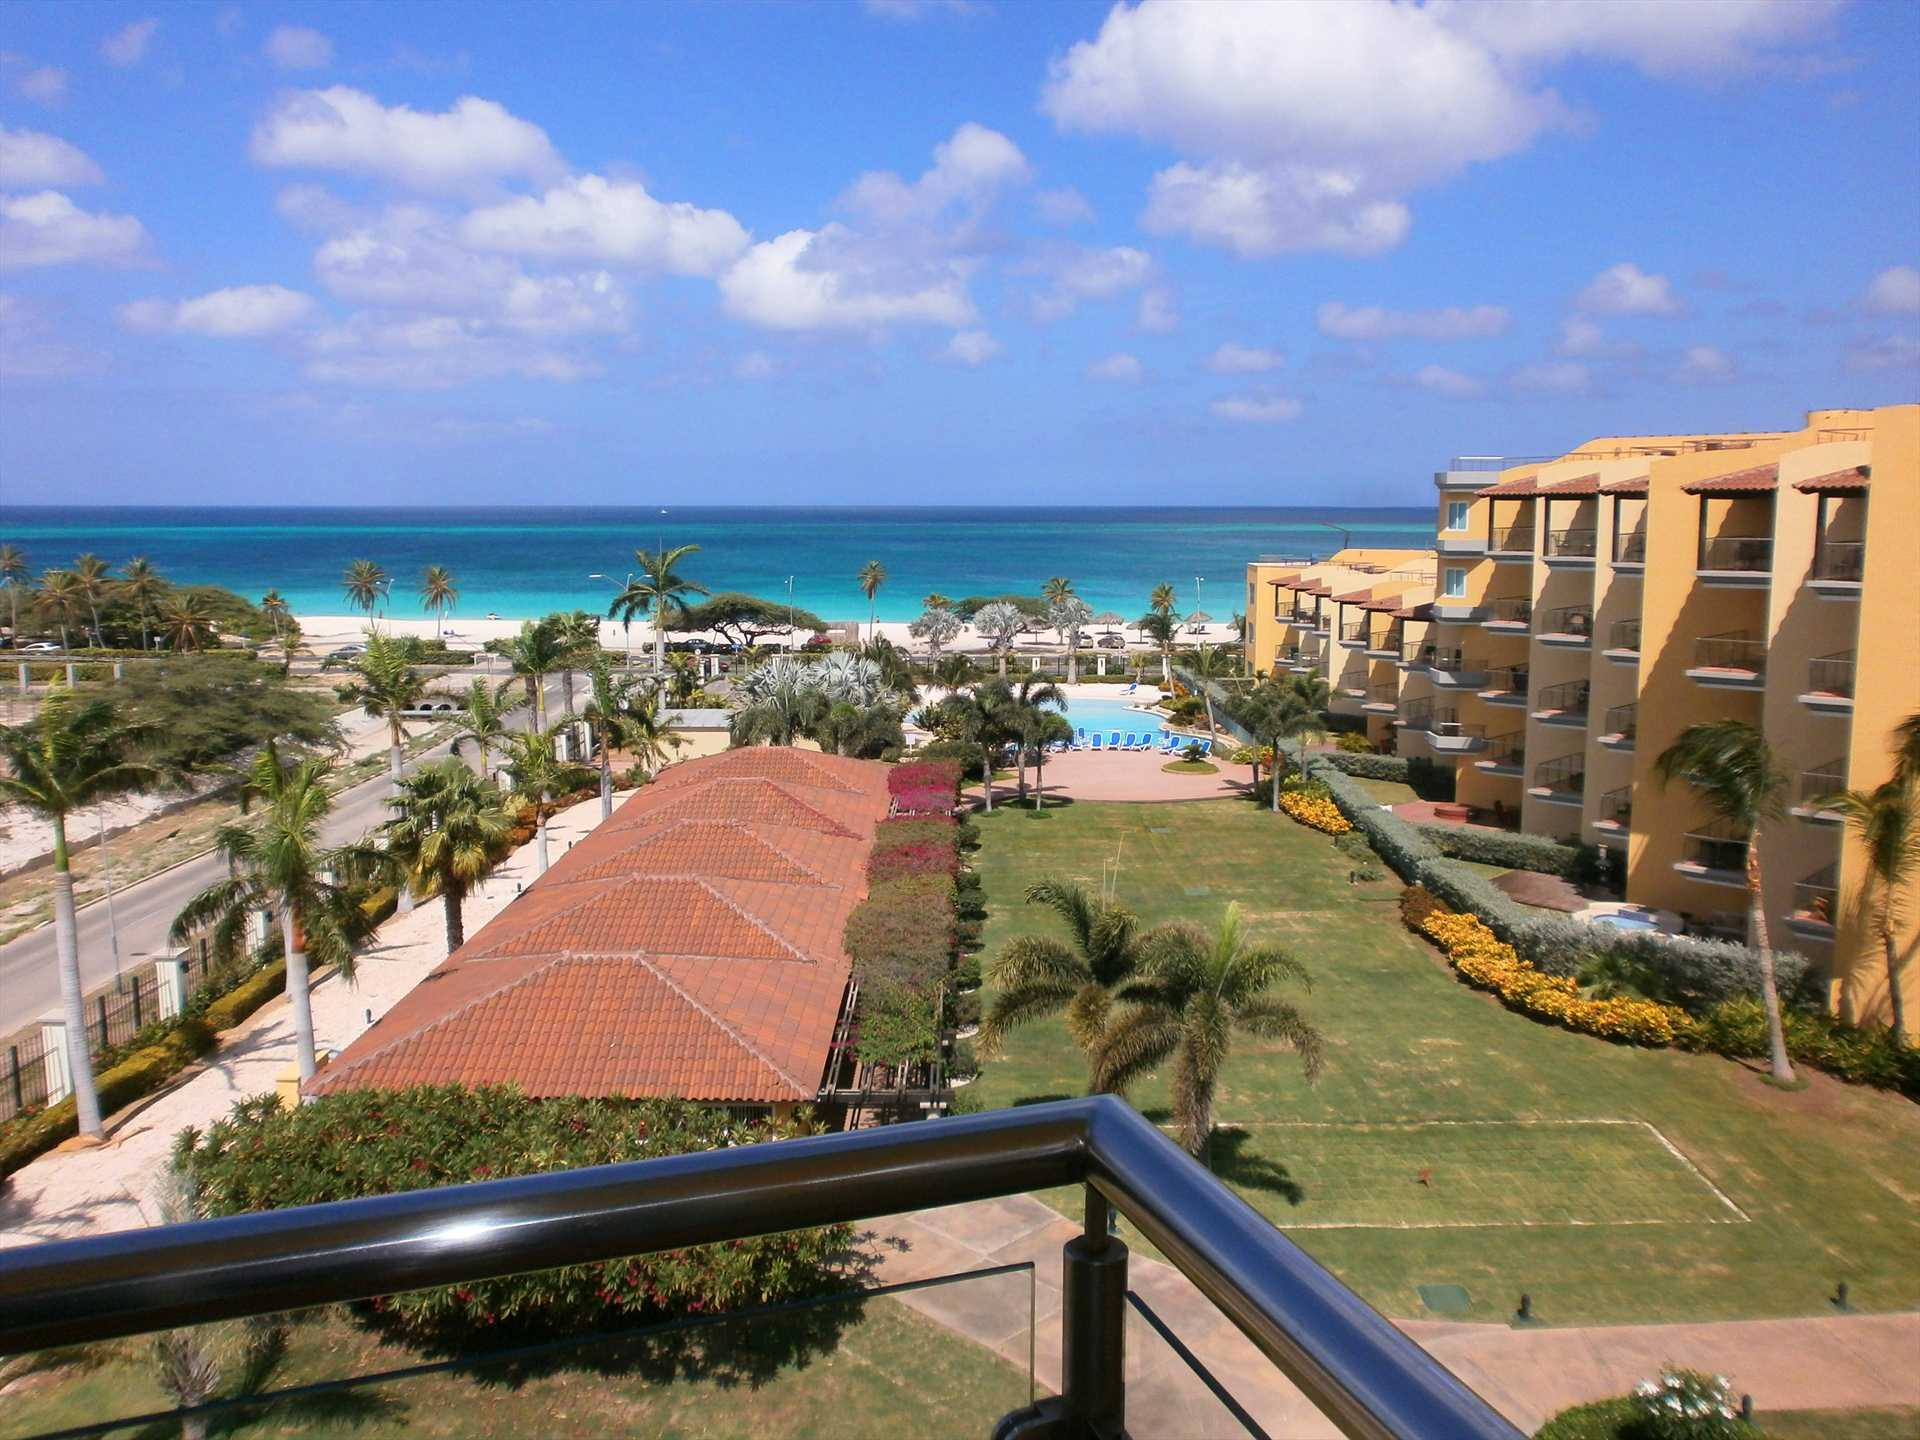 Your view of the pool and ocean from the balcony